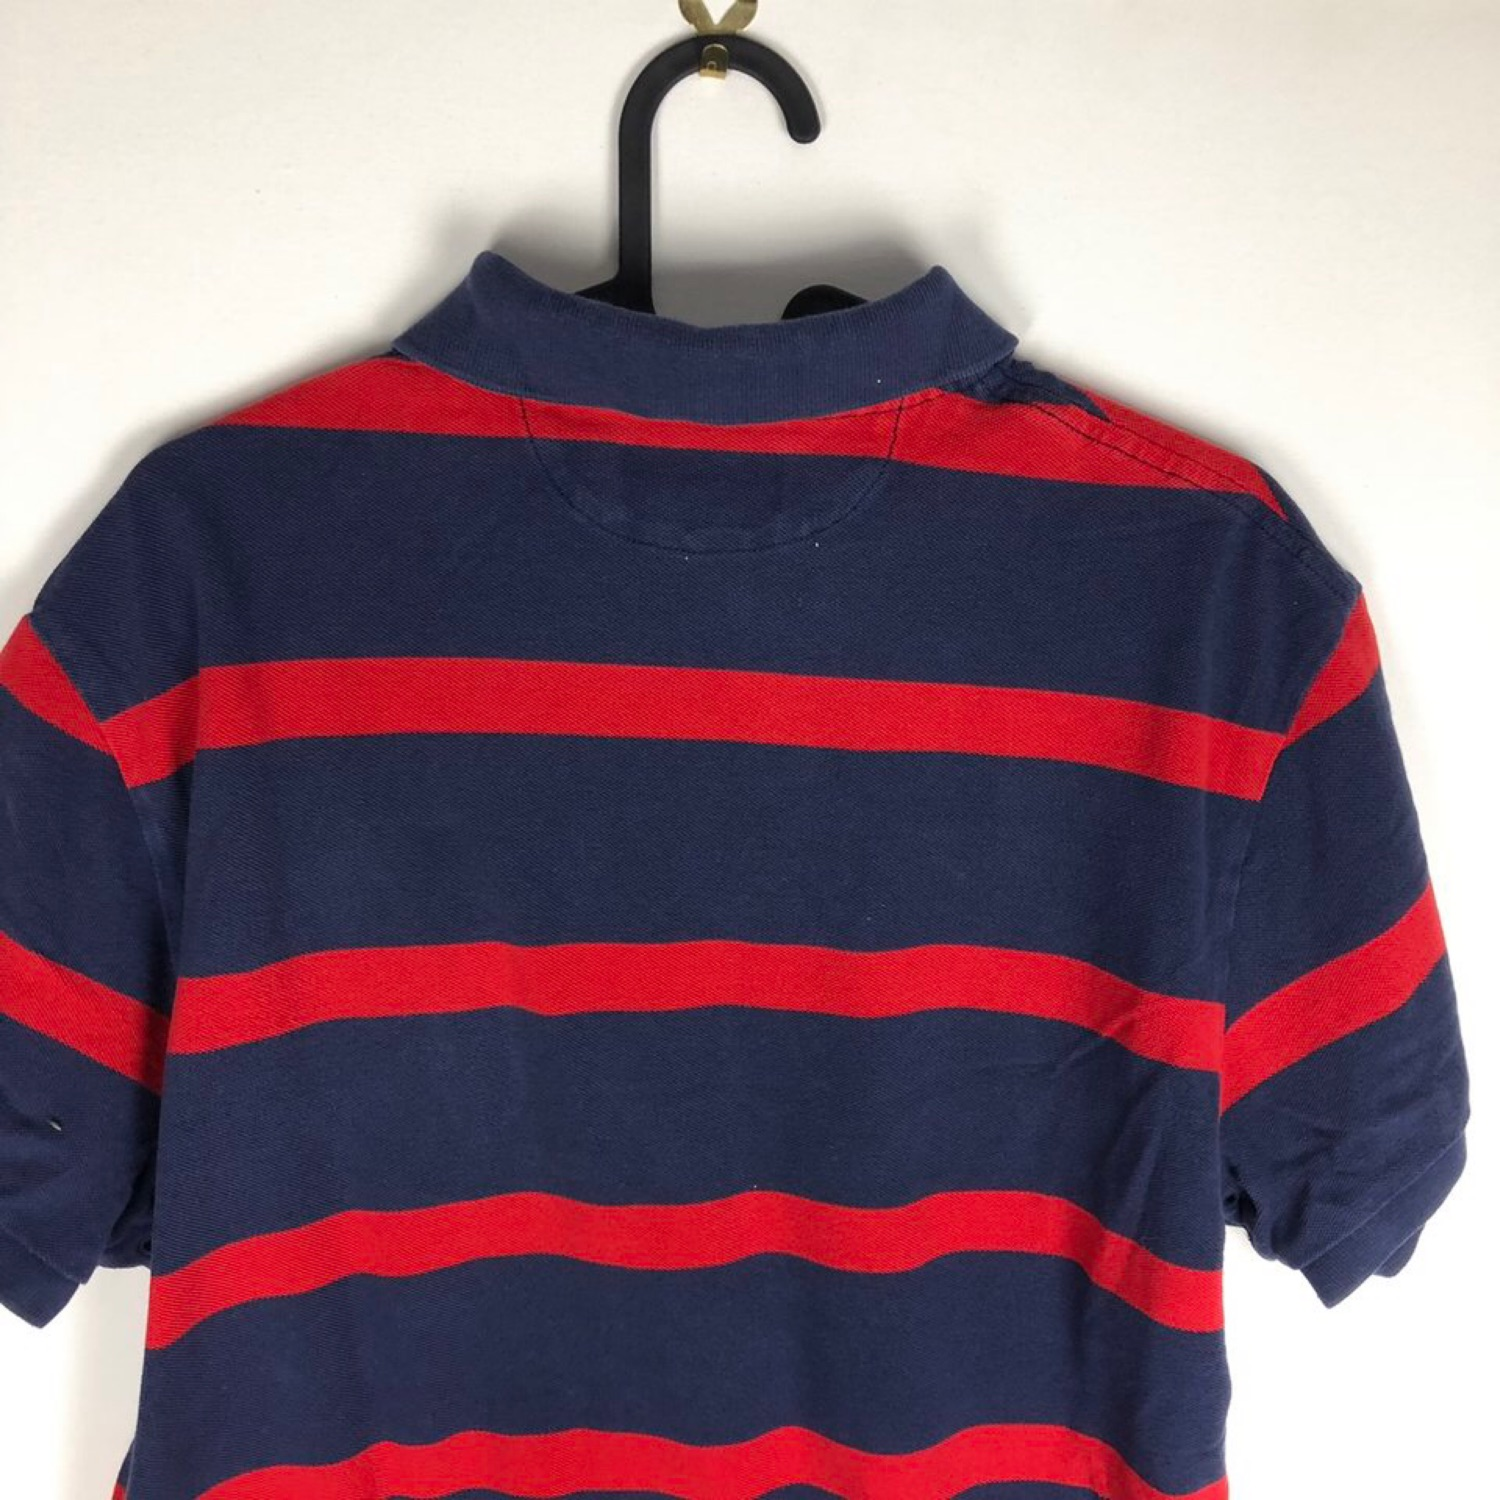 Vintage Polo Ralph Lauren Rugby Shirt